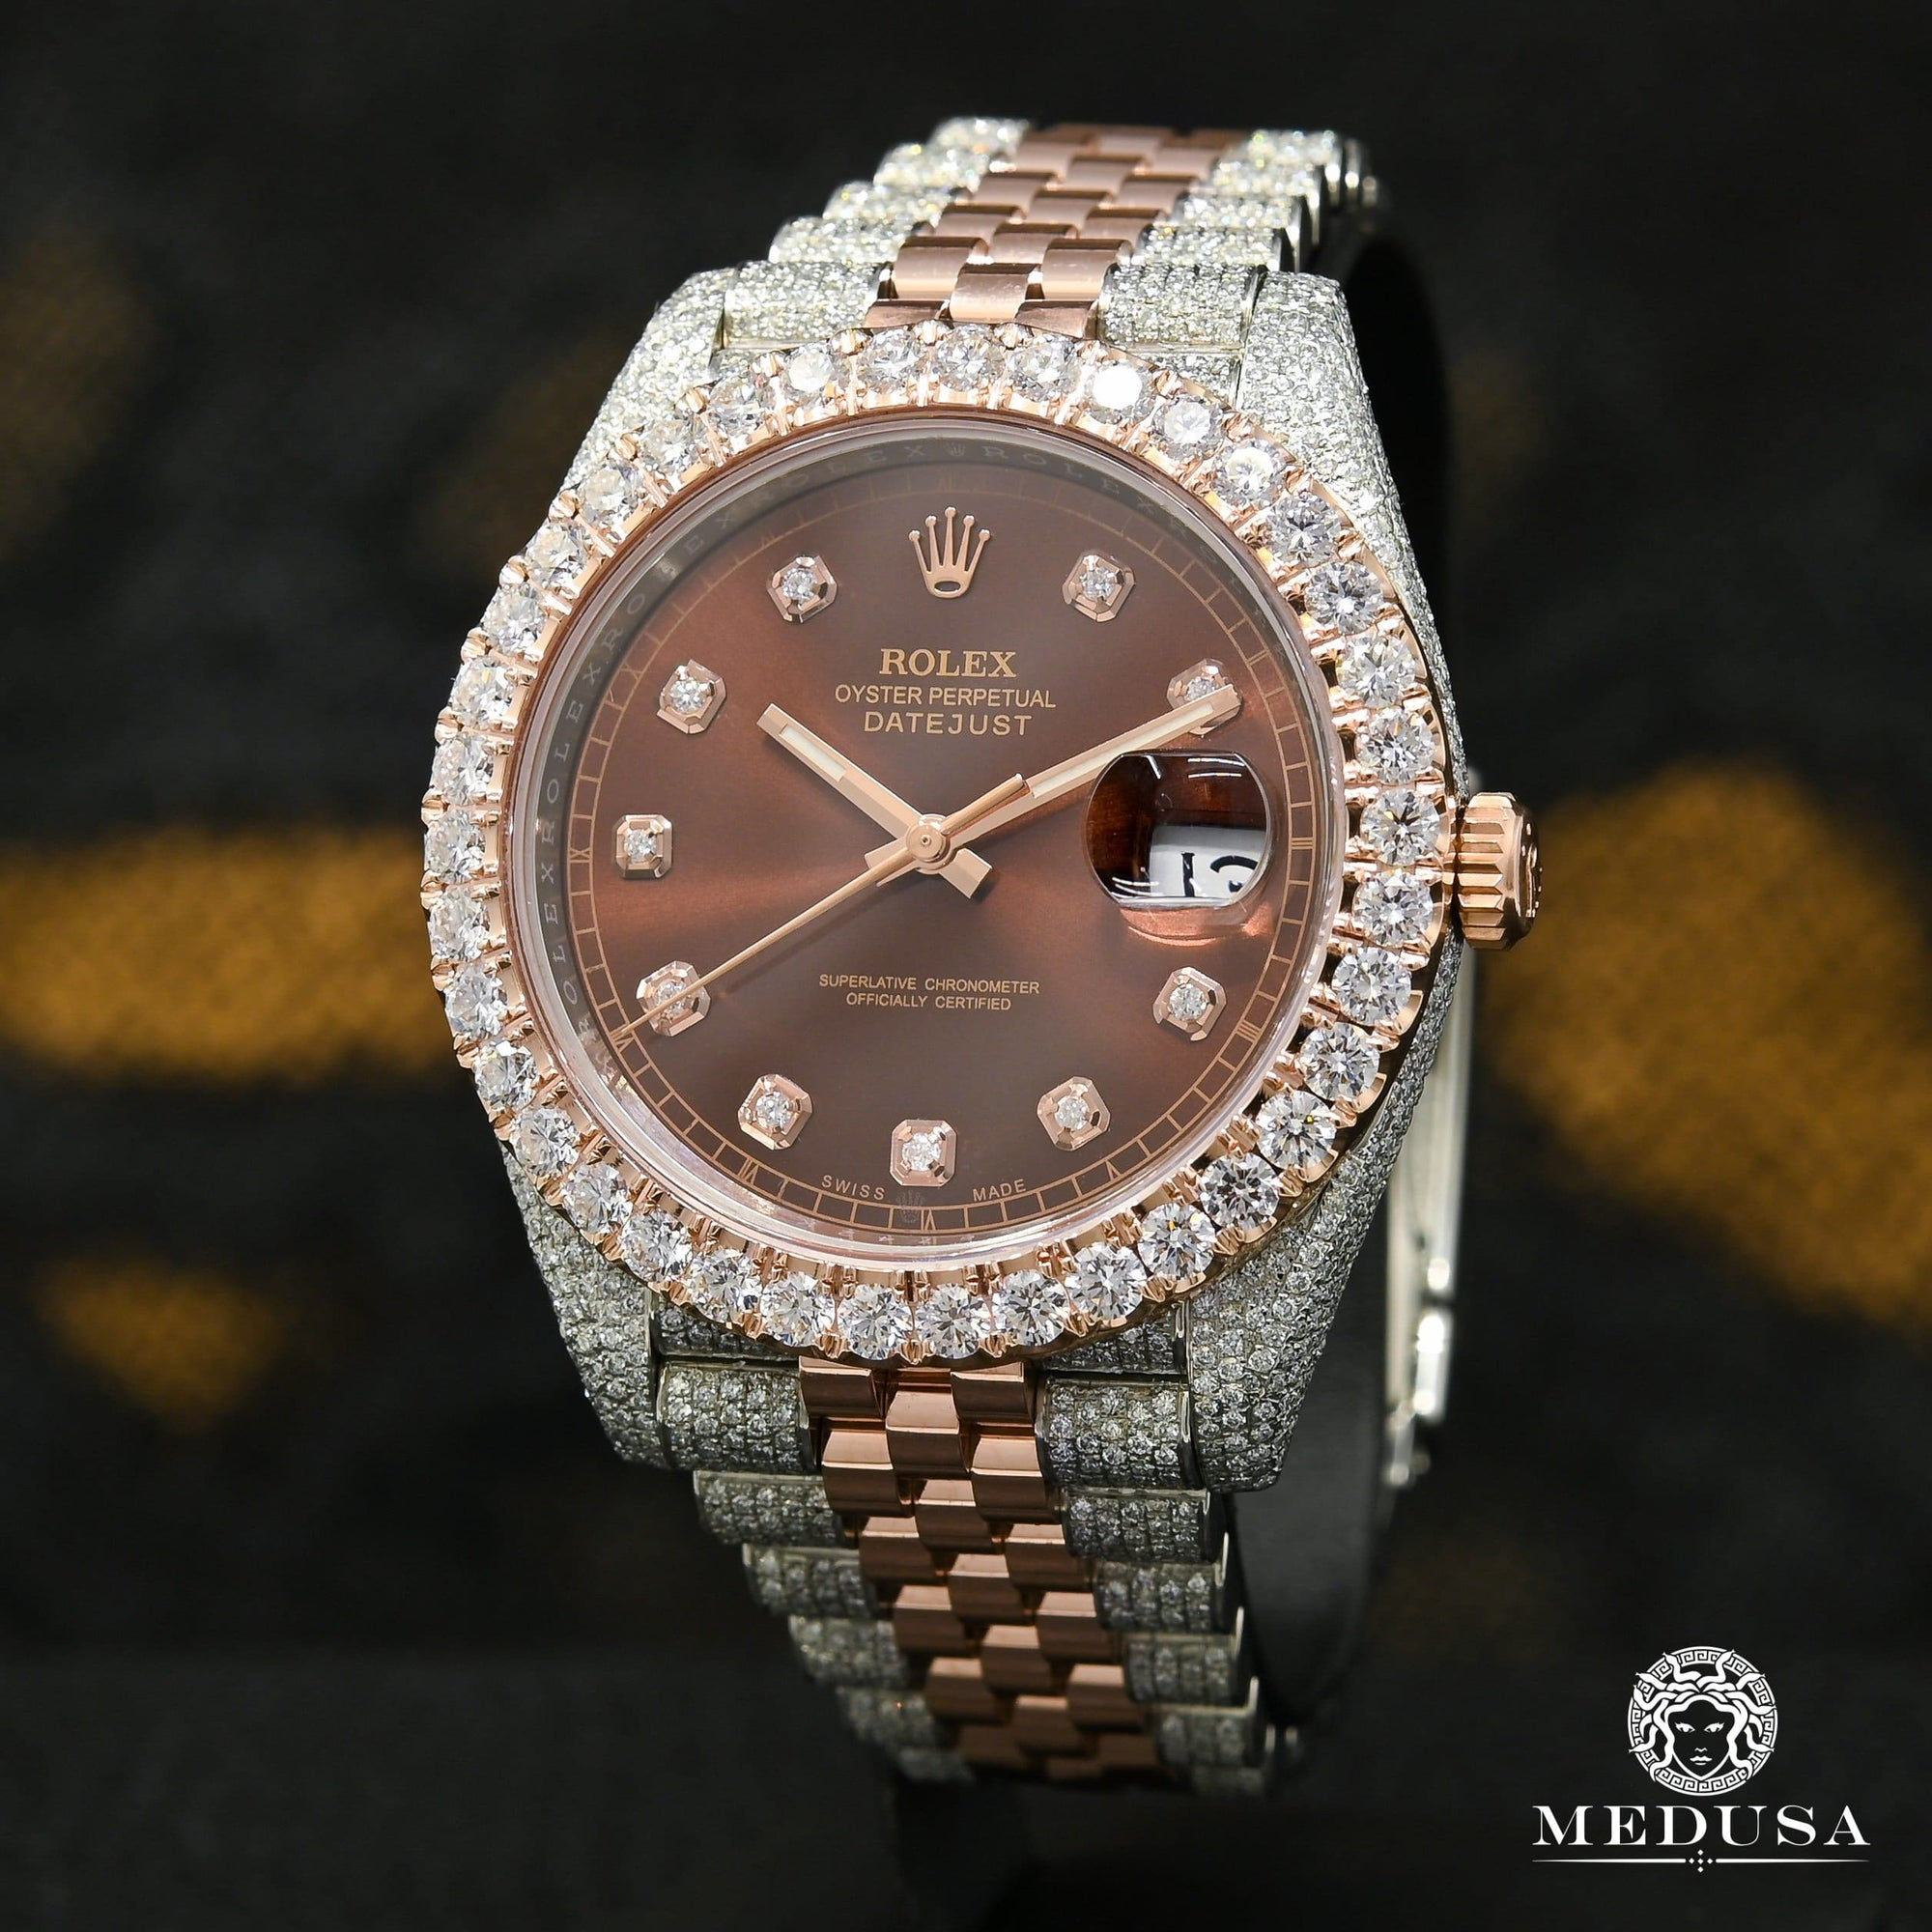 Rolex Datejust 41mm - Jubilee Everose Iced